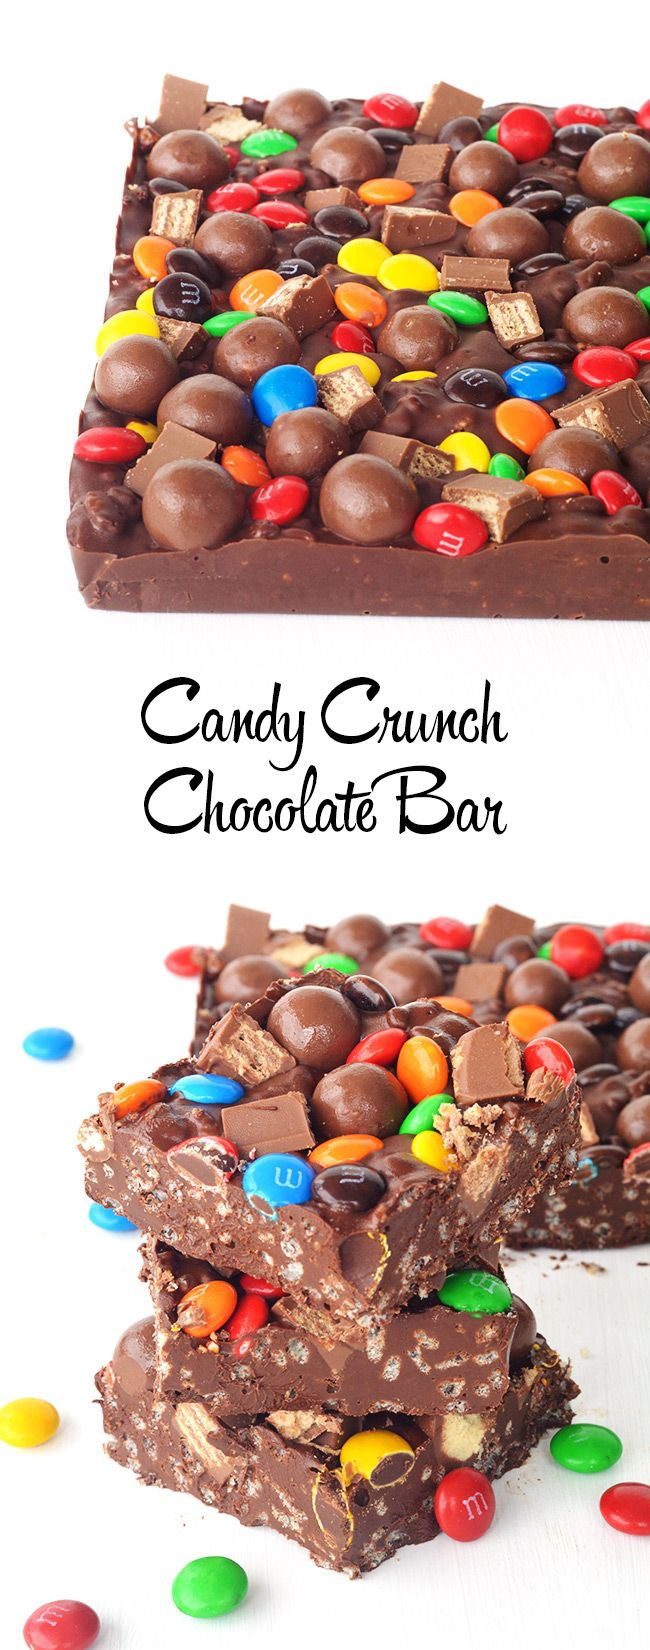 Candy Crunch Chocolate Bar that tastes just like a Nestle Crunch Bar topped with all your favourite candy! No bake and only 5 ingredients!